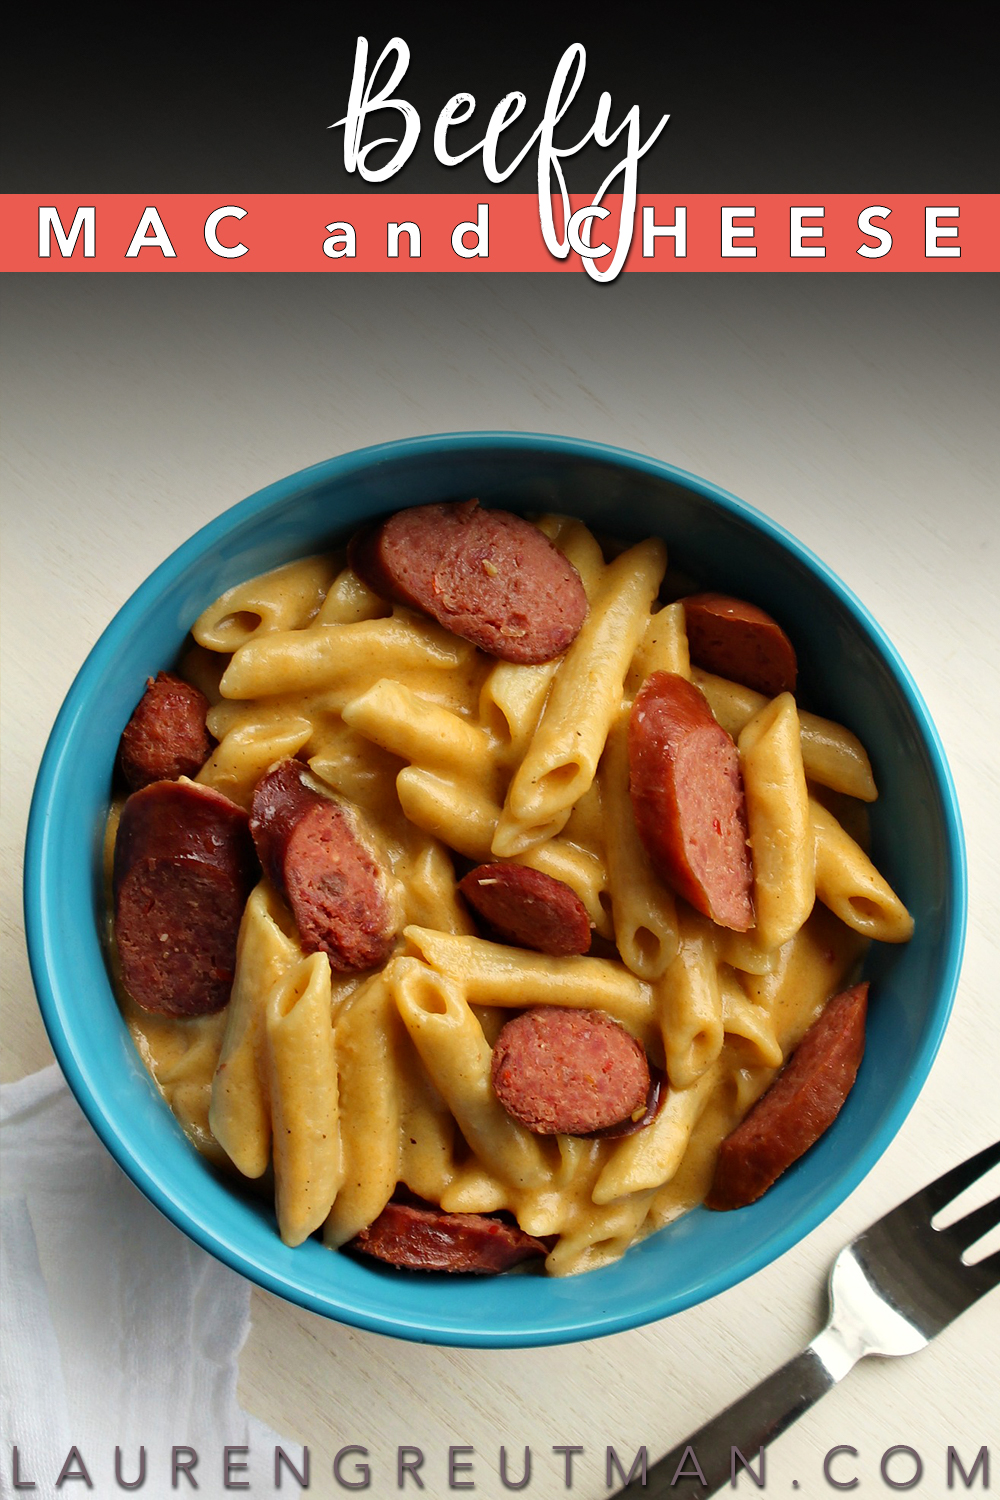 This Beefy Mac and Cheese recipe is easy to make, has no artificial flavors and the kids will absolutely LOVE this Recipe!